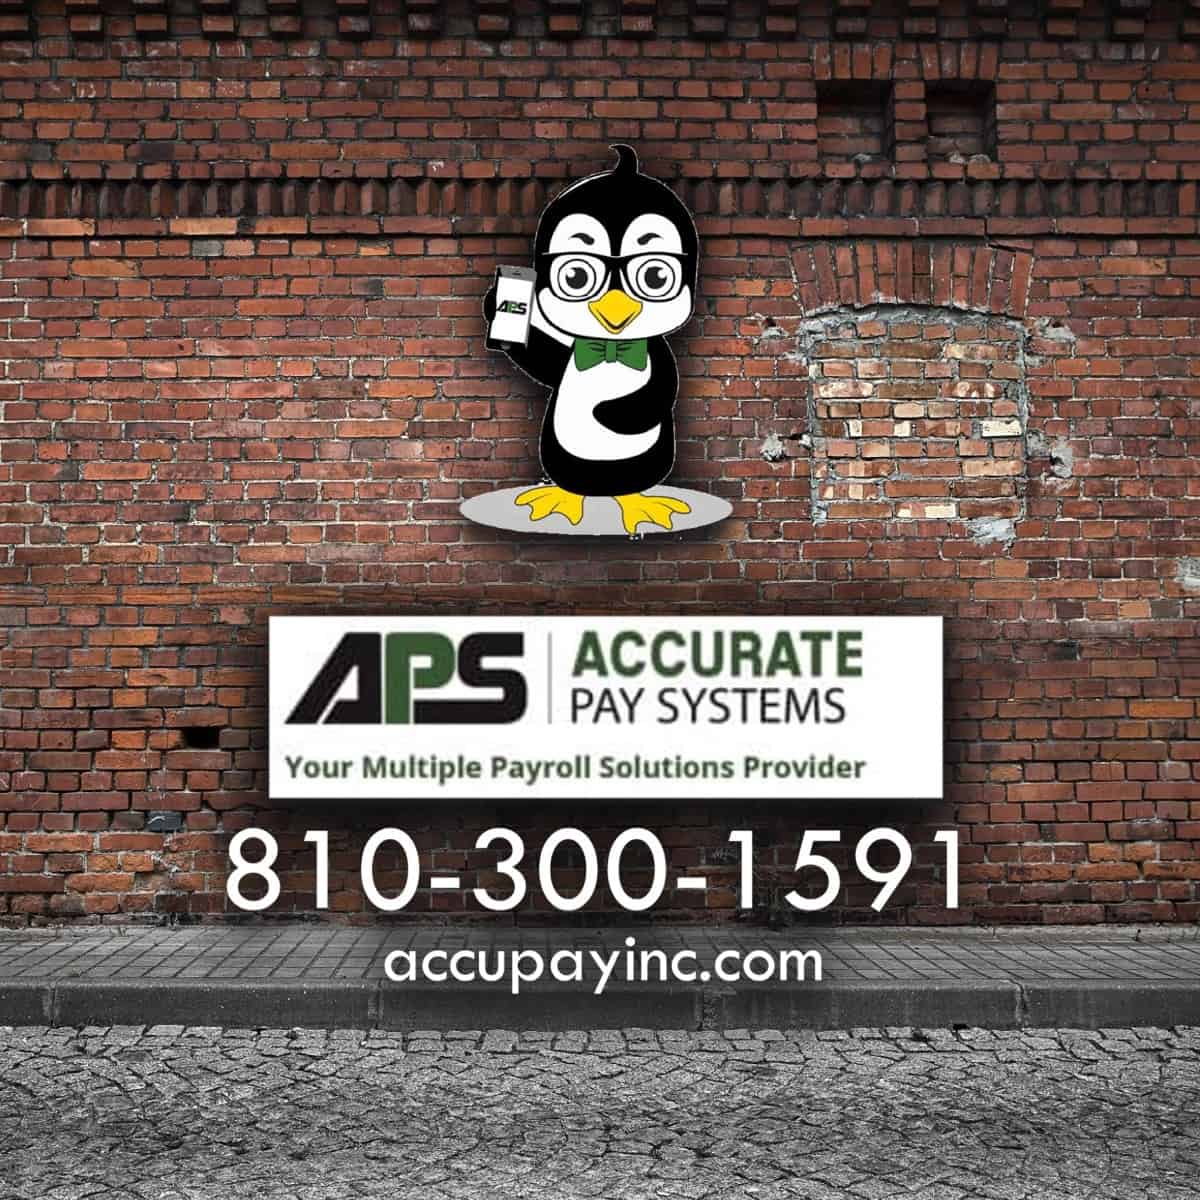 Accurate Pay Systems Inc Logo on brickwall